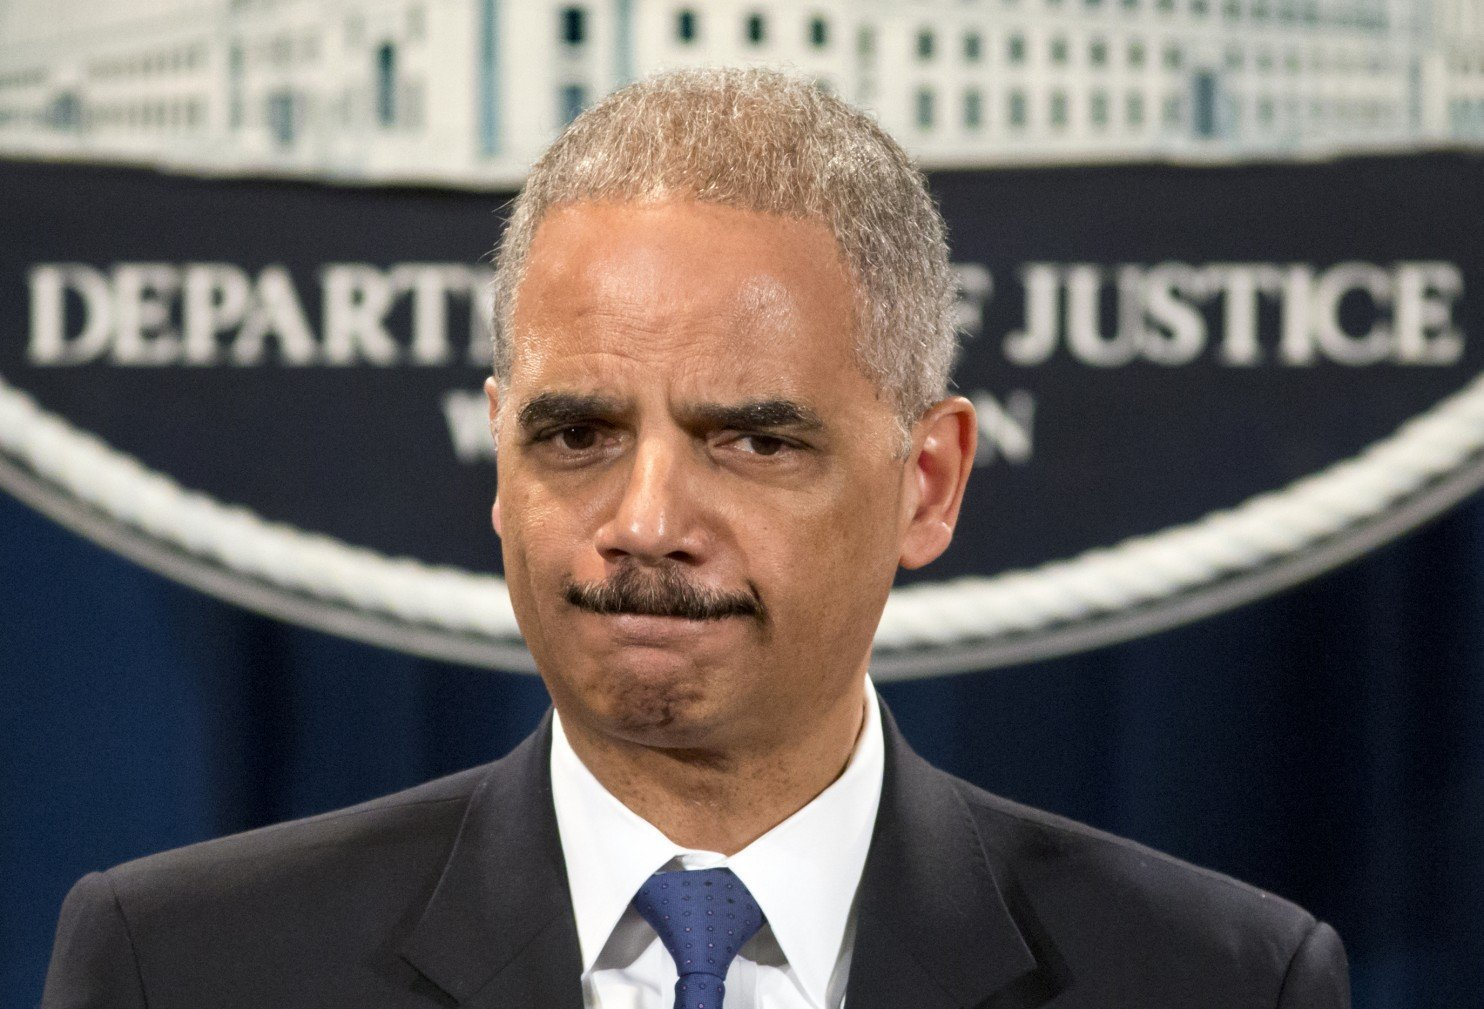 Eric Holder Weighs in on McCabe Firing Its Dangerous to Attempt to Please Erratic President